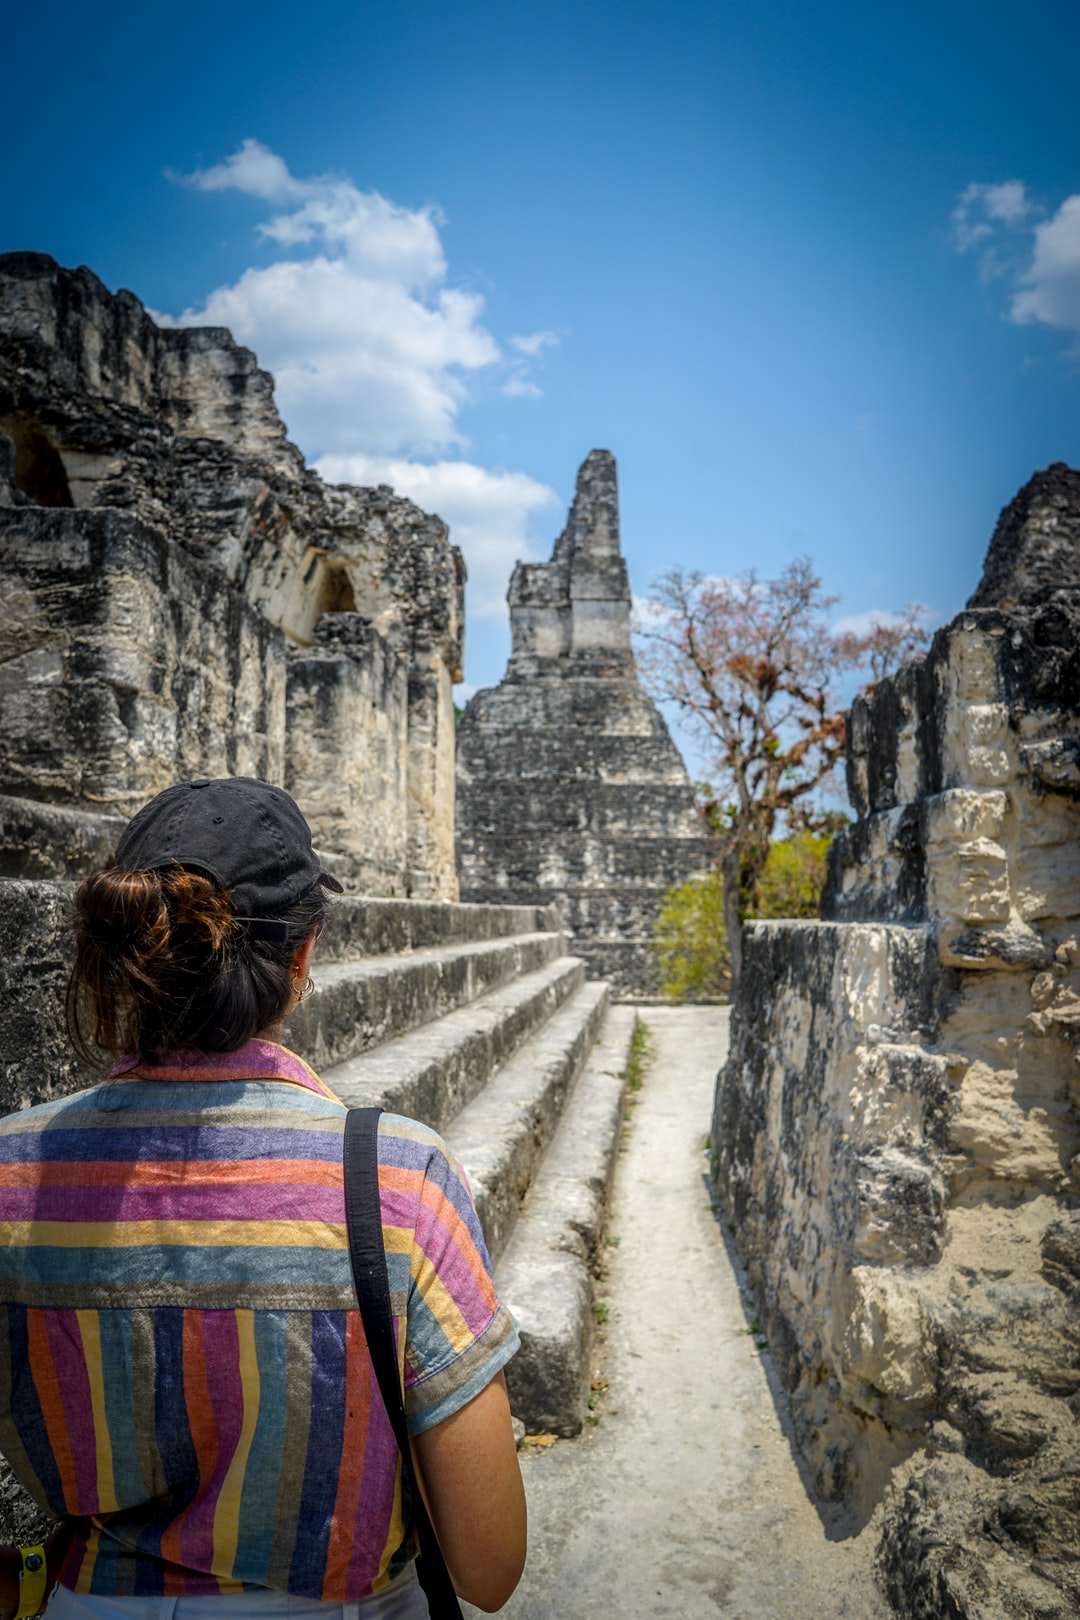 Tikal is impressive, tall pyramid shaped buildings that were the cornerstones of the Mayan civilization from 900 BC to 900 AD. Most were used as locations for prayer and being closer to God. Anjali and walked the Altiplana a modern day market and saw the Jaguar Temple behind.